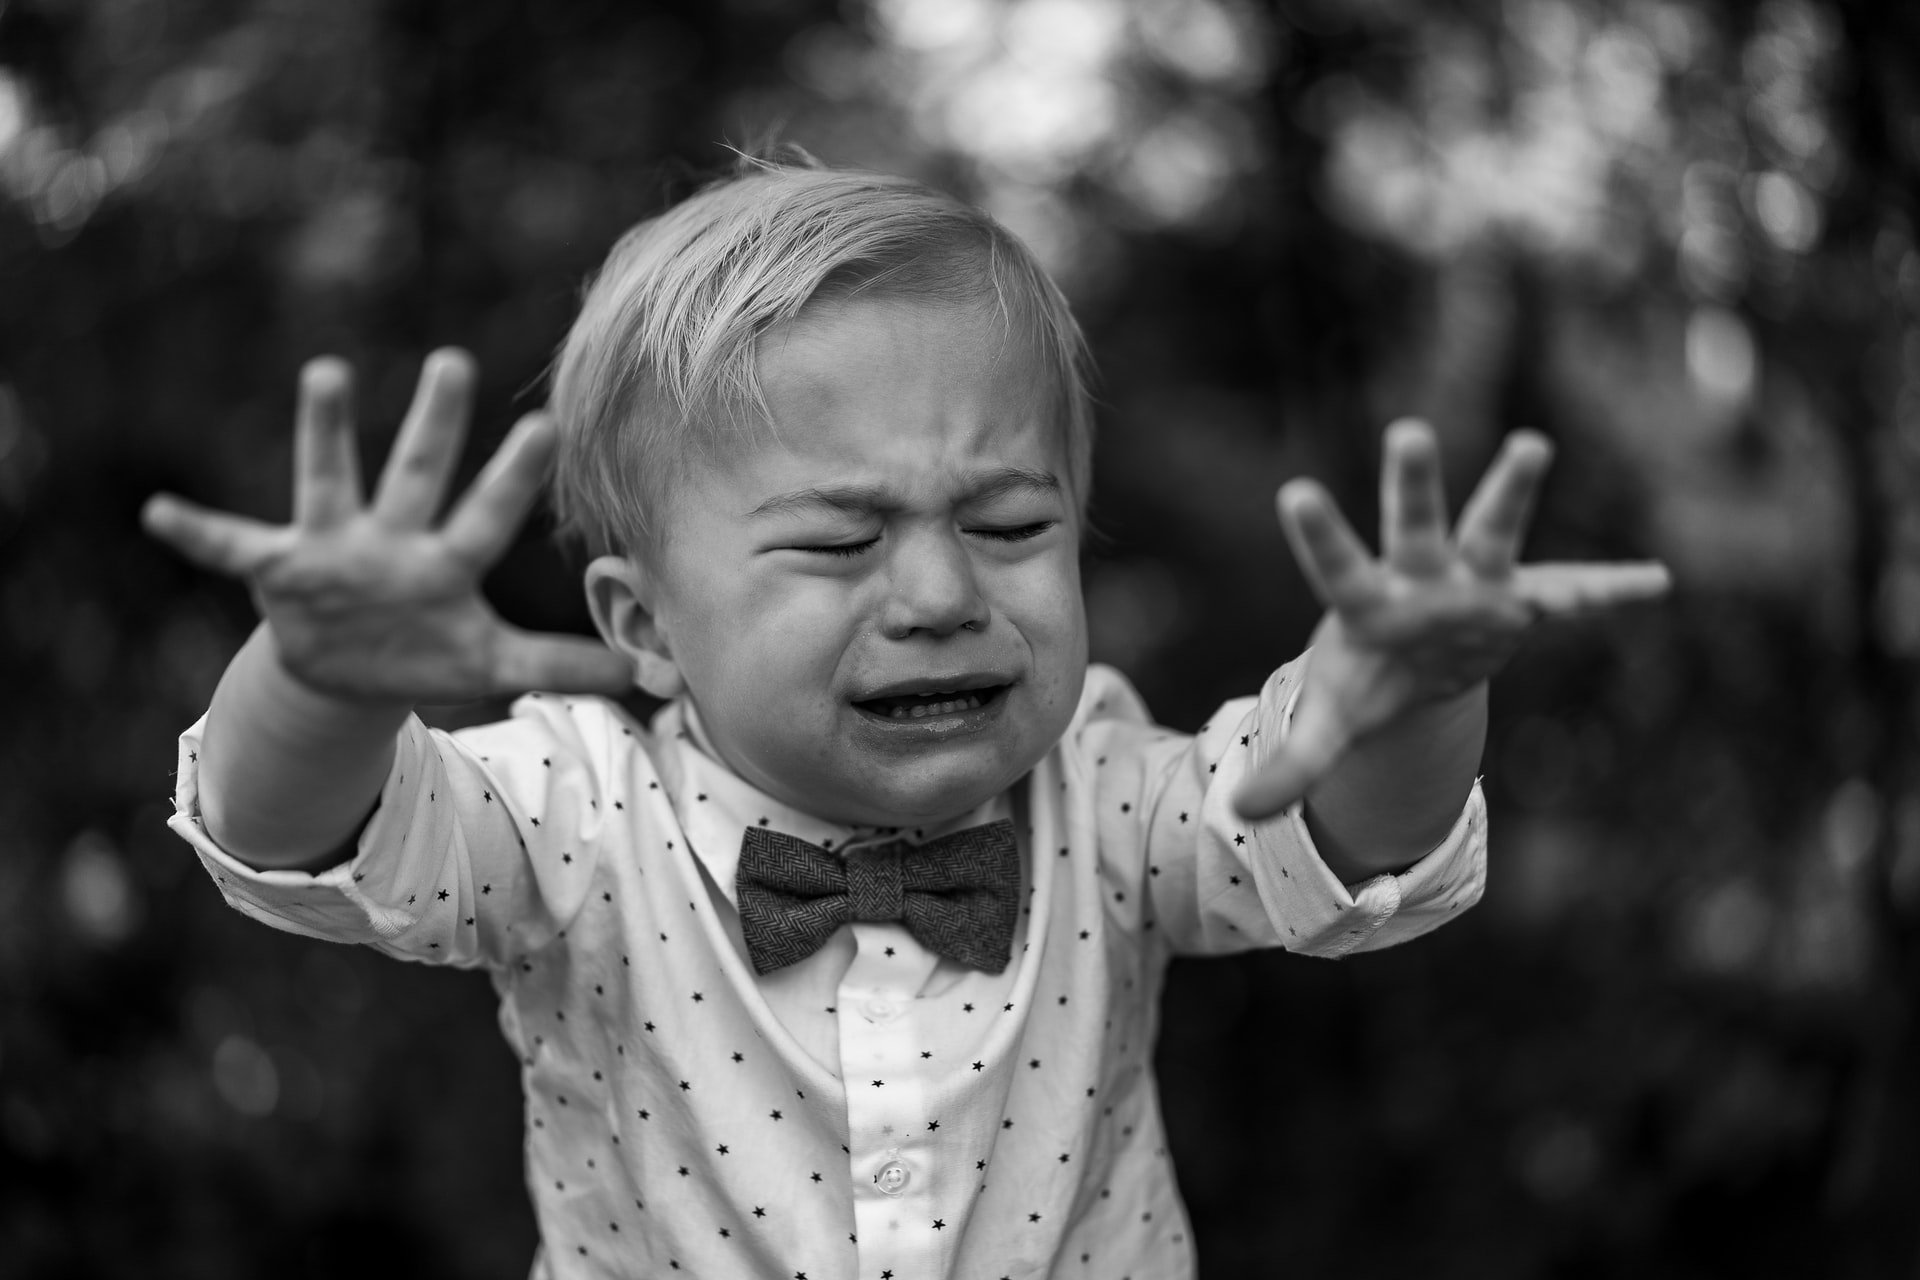 Boy crying wearing a bow tie   Source: Unsplash